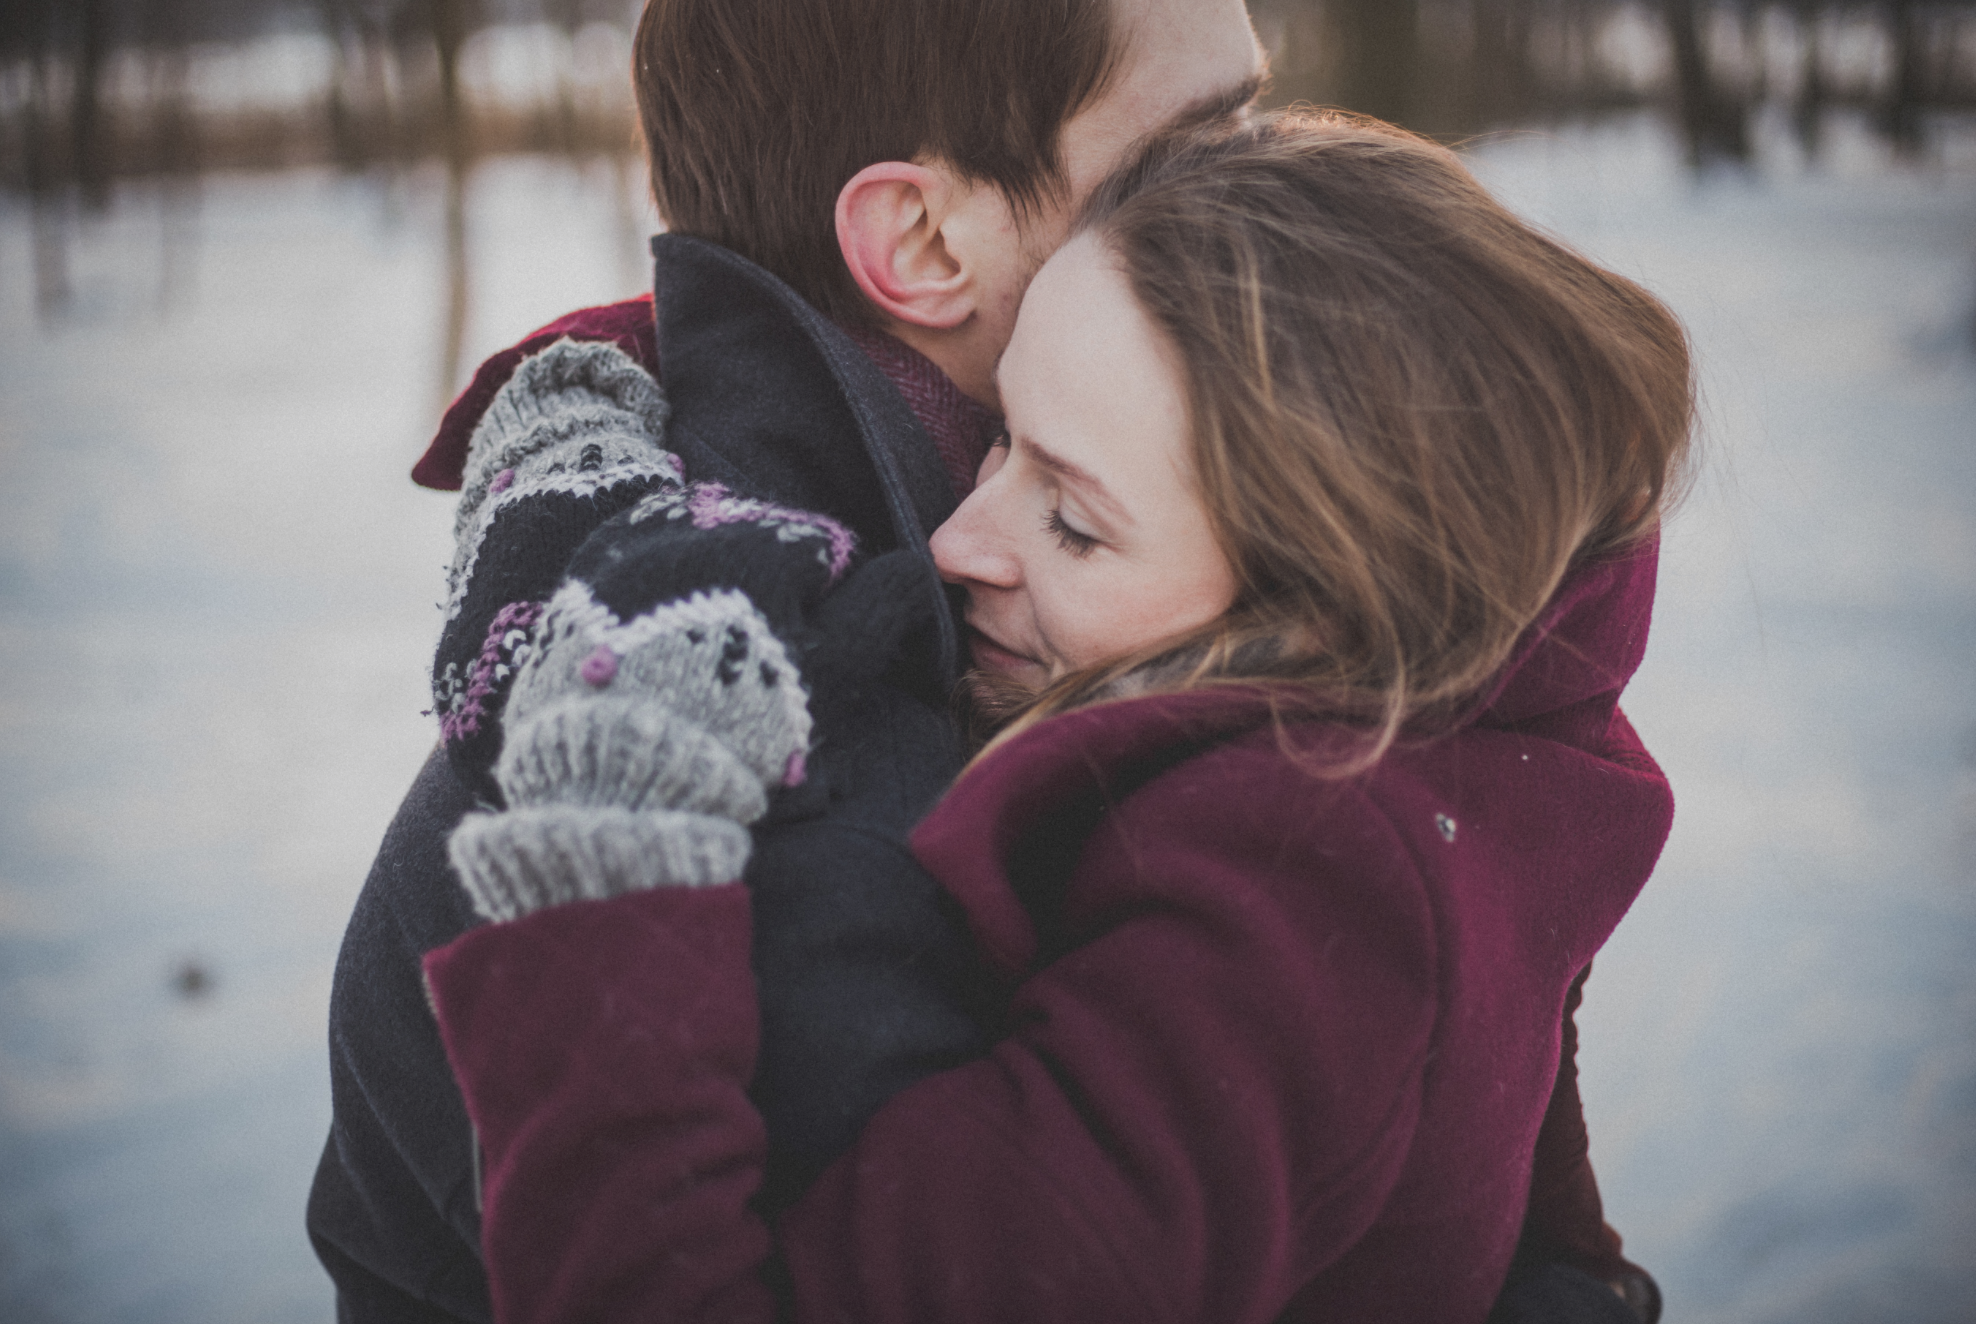 Family and friends can play a hugely important role in keeping people on track and moving forwards, by helping them to feel supported, connected and loved. -